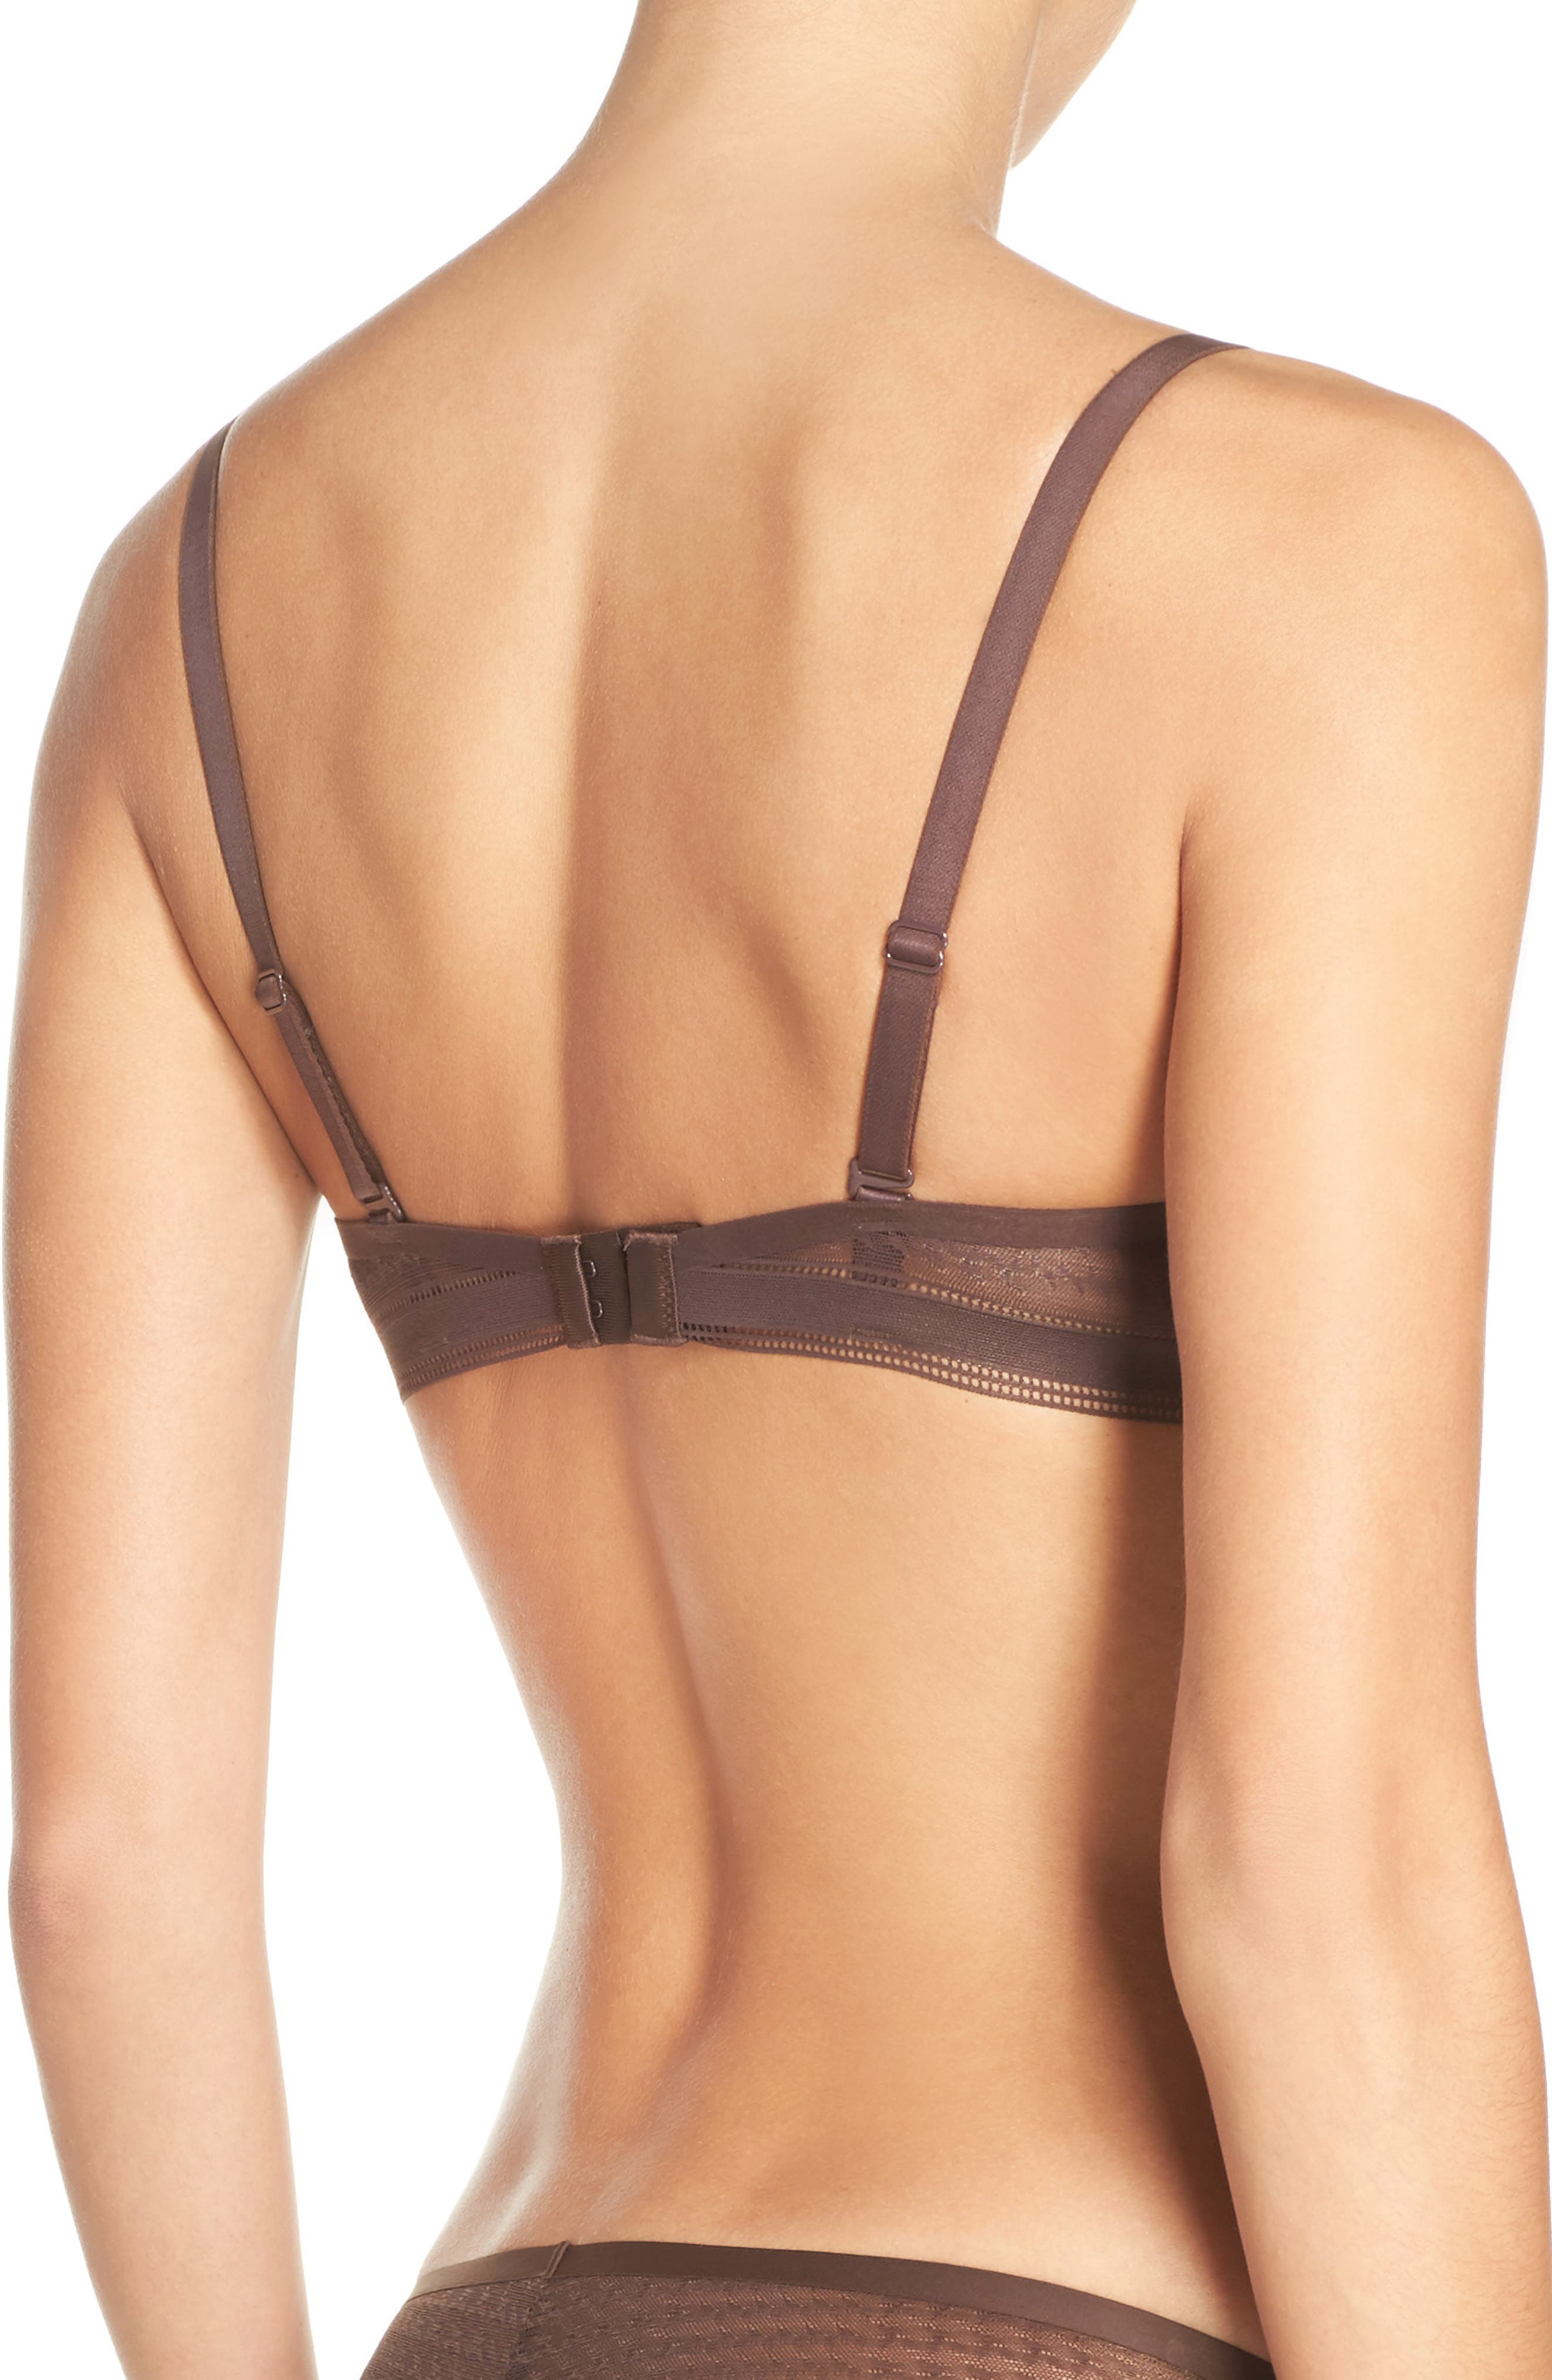 Muse Underwire Plunge Push-Up Bra,                             Alternate thumbnail 8, color,